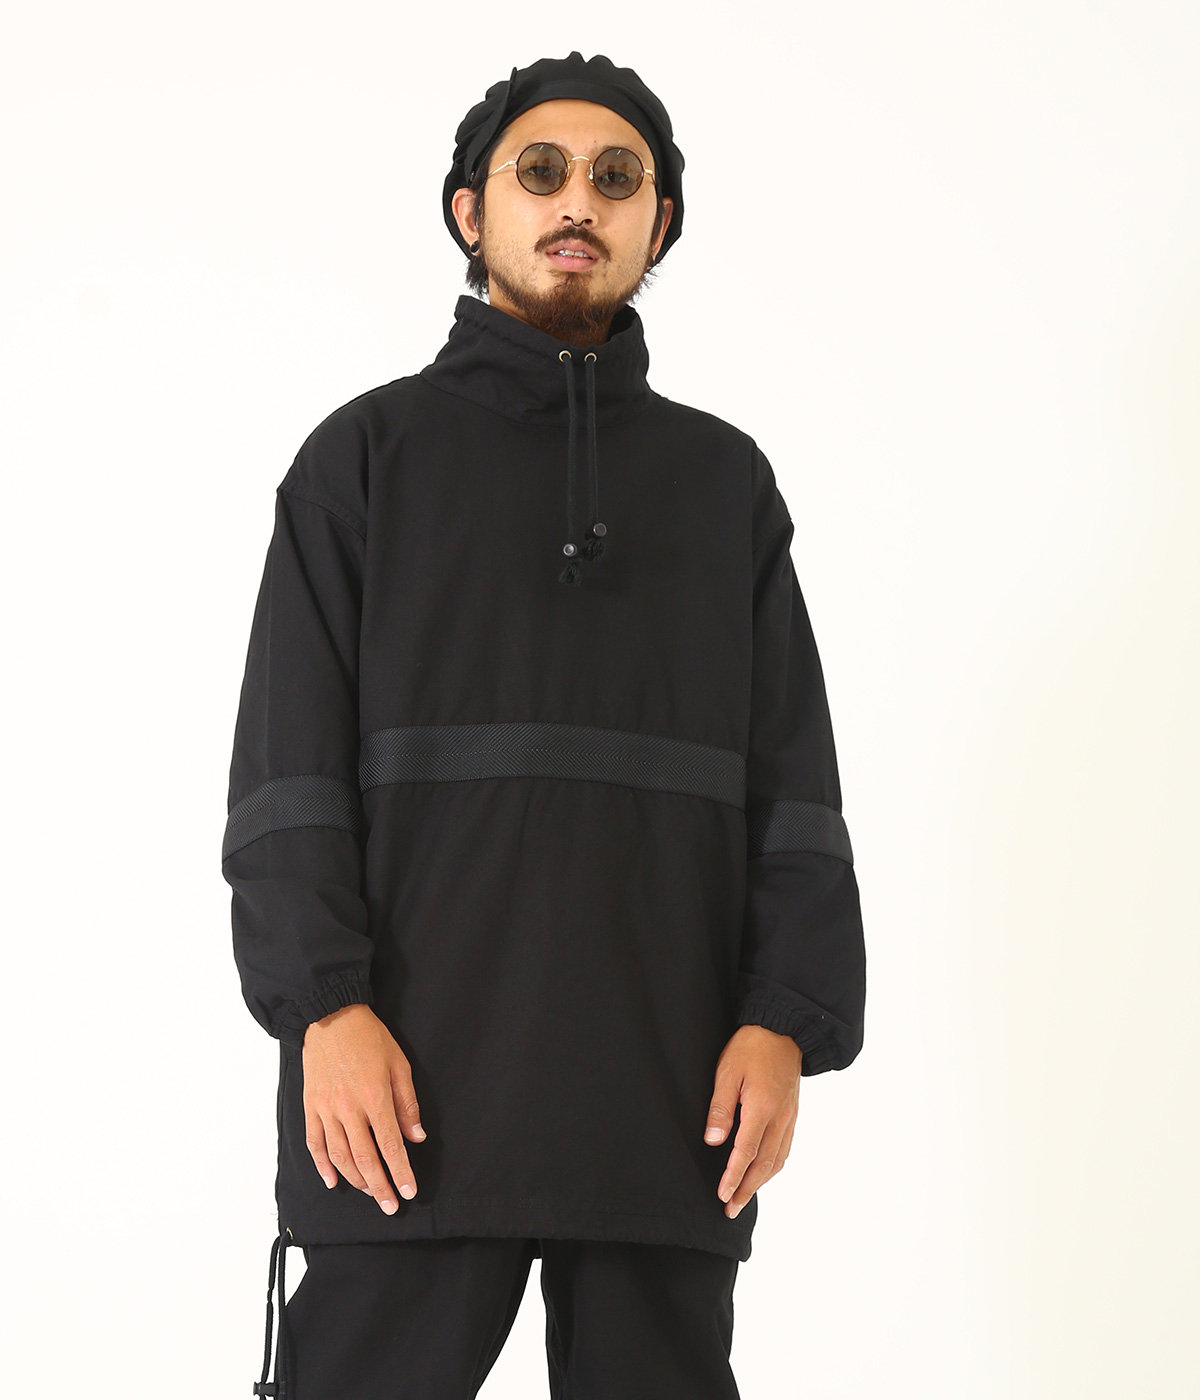 DUCK NECK PULLOVER